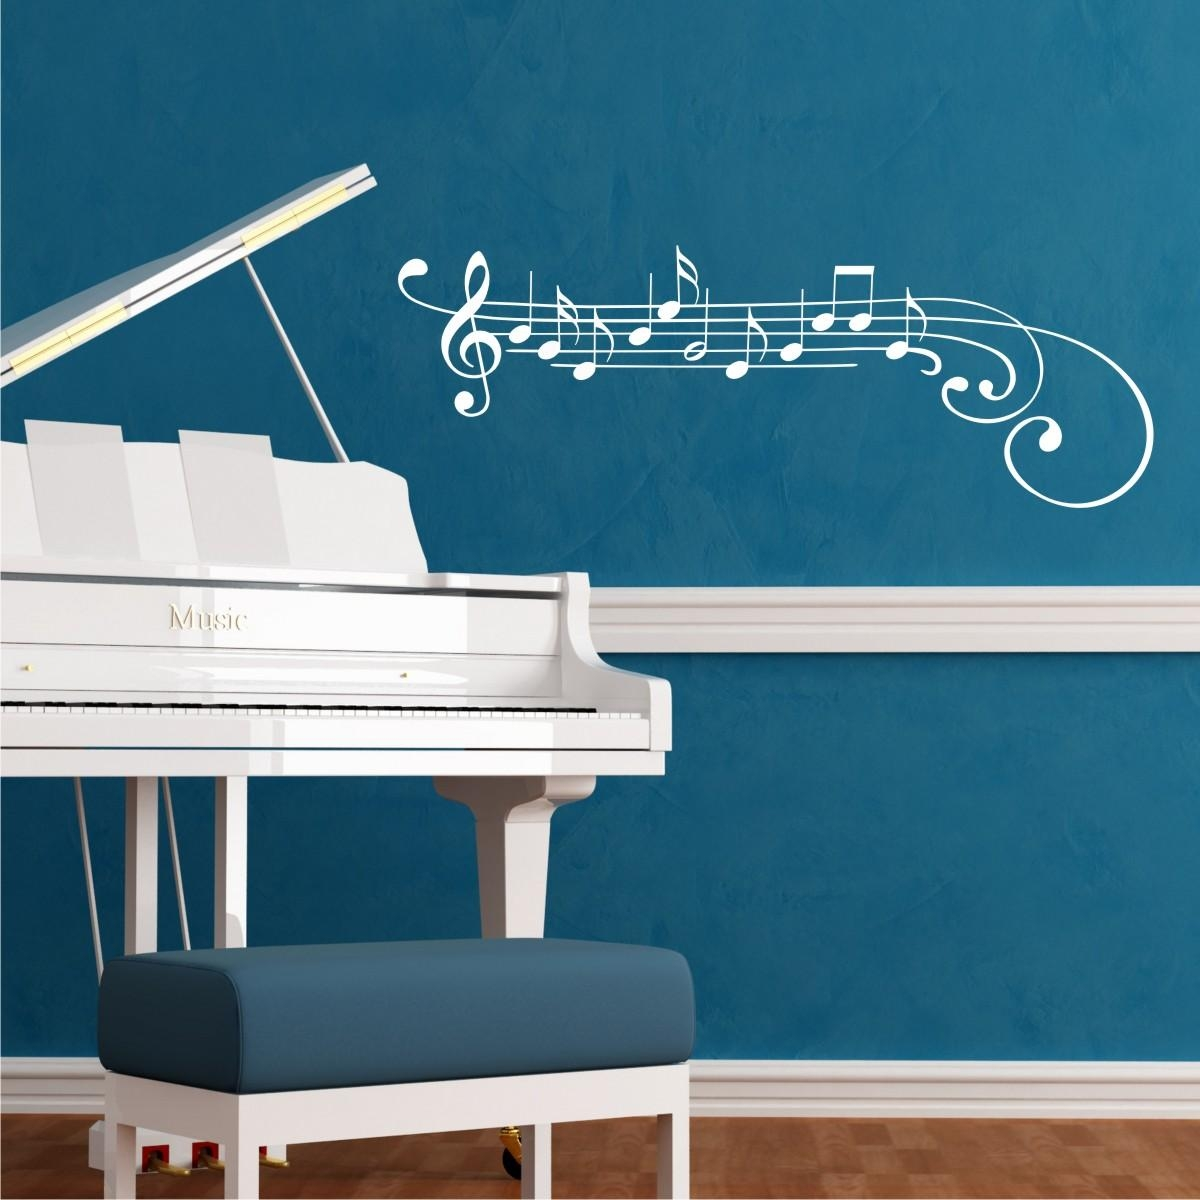 Treble Clef And Notes Wall Quotes™ Wall Art Decal | Wallquotes For Music Notes Wall Art Decals (Image 14 of 20)